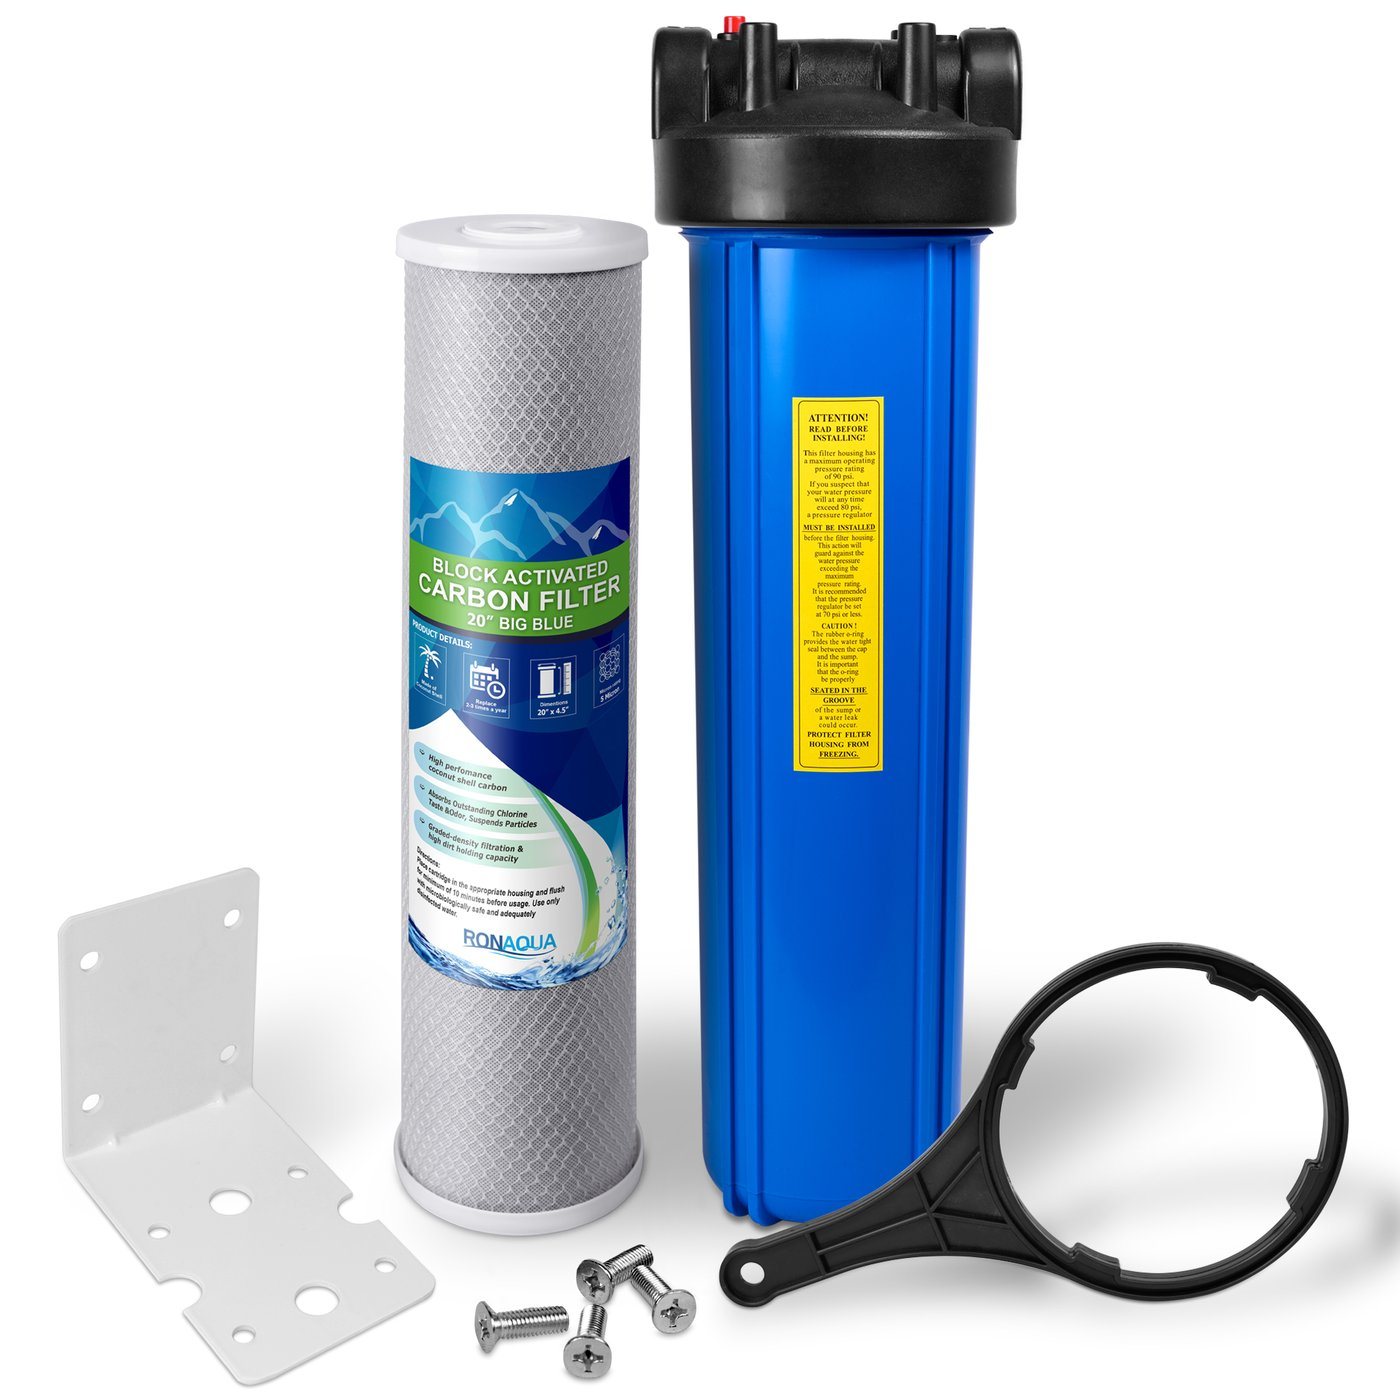 "20"" Big Blue Whole House Water Filter w/ 5 Micron Activated Carbon Block Water Filter Cartridge"